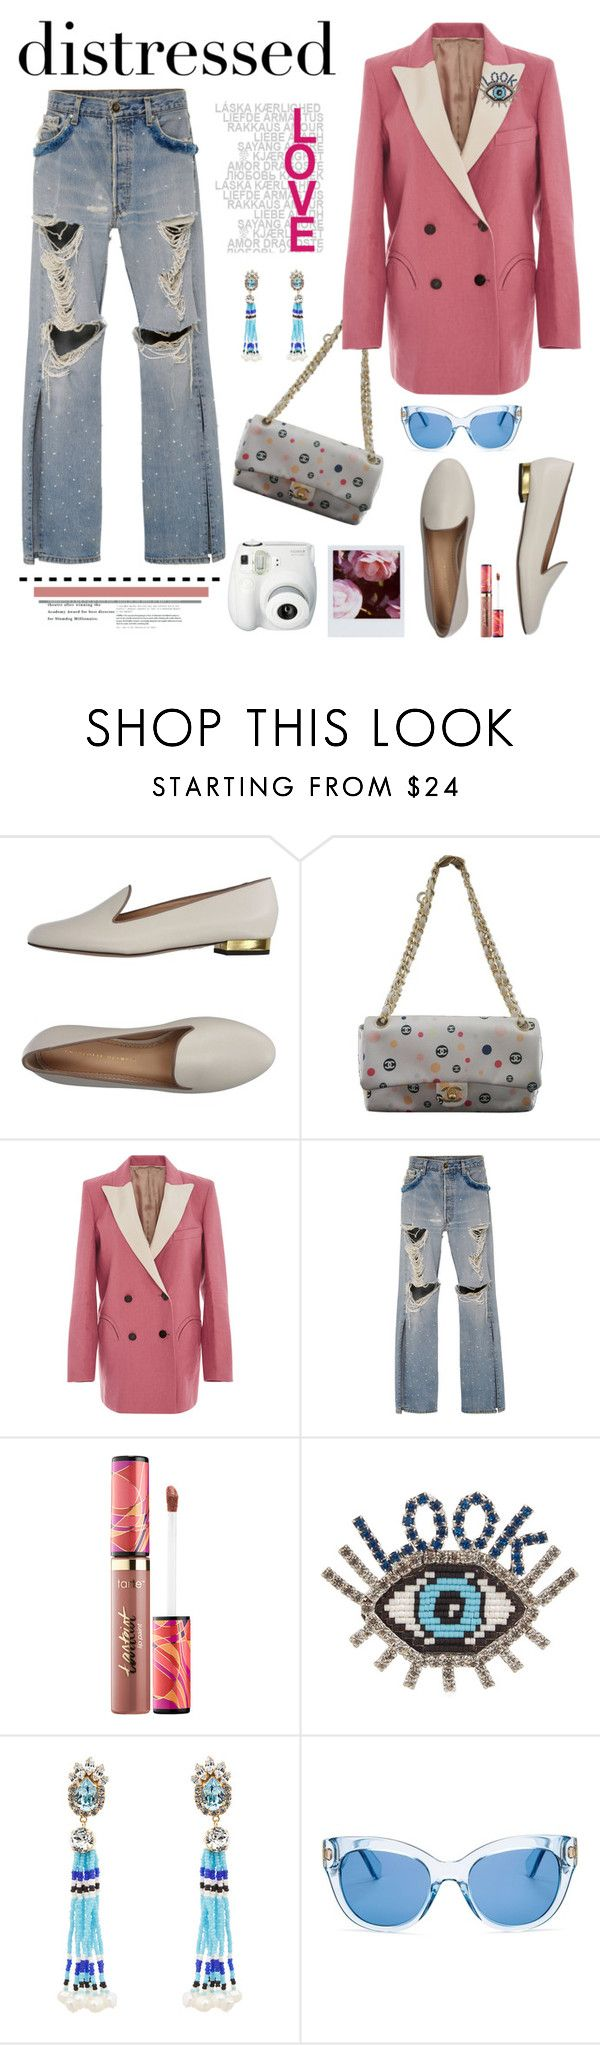 """""""True Blue: Distressed Denim"""" by hamaly ❤ liked on Polyvore featuring Charlotte Olympia, Chanel, Blazé Milano, Jonathan Simkhai, Polaroid, tarte, Shourouk, Kate Spade, outfit and denim"""